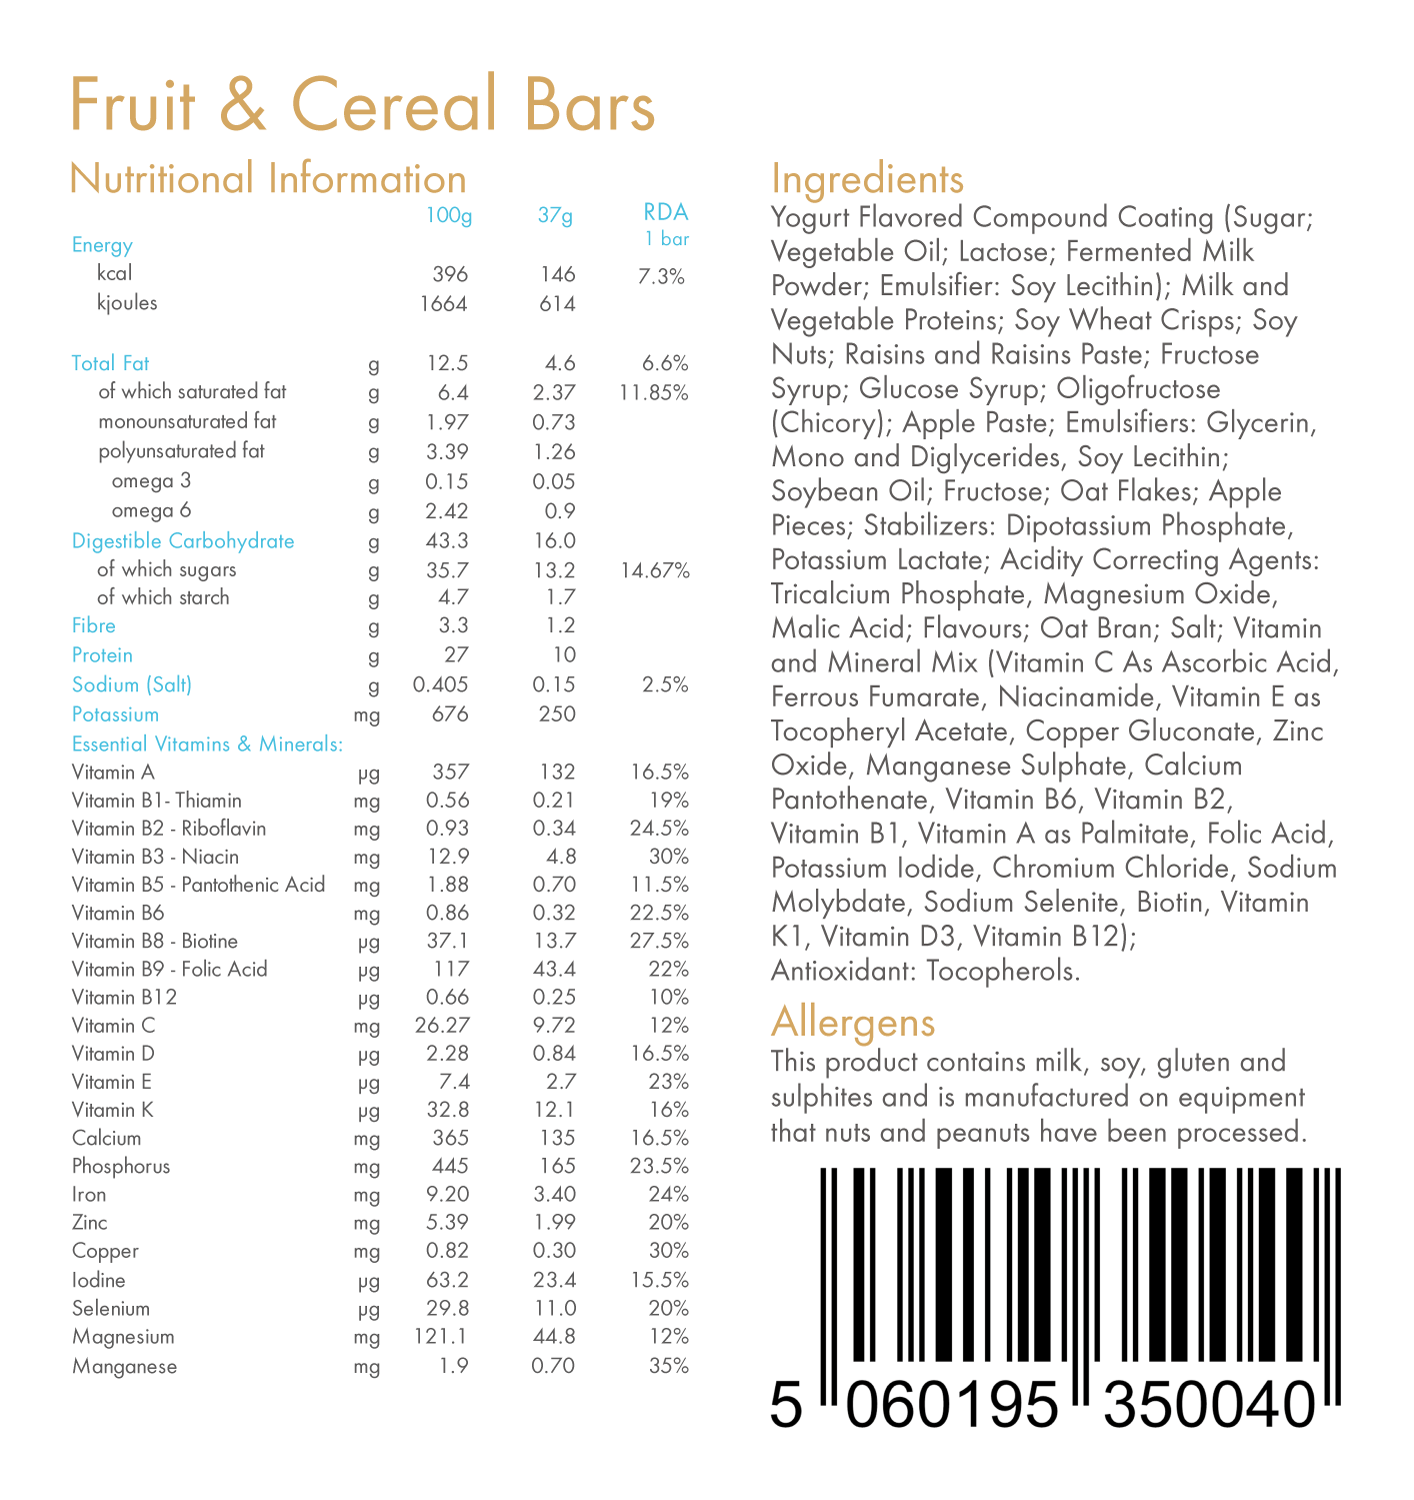 Fruit & Cereal 146kcal Total Food Replacement Bar